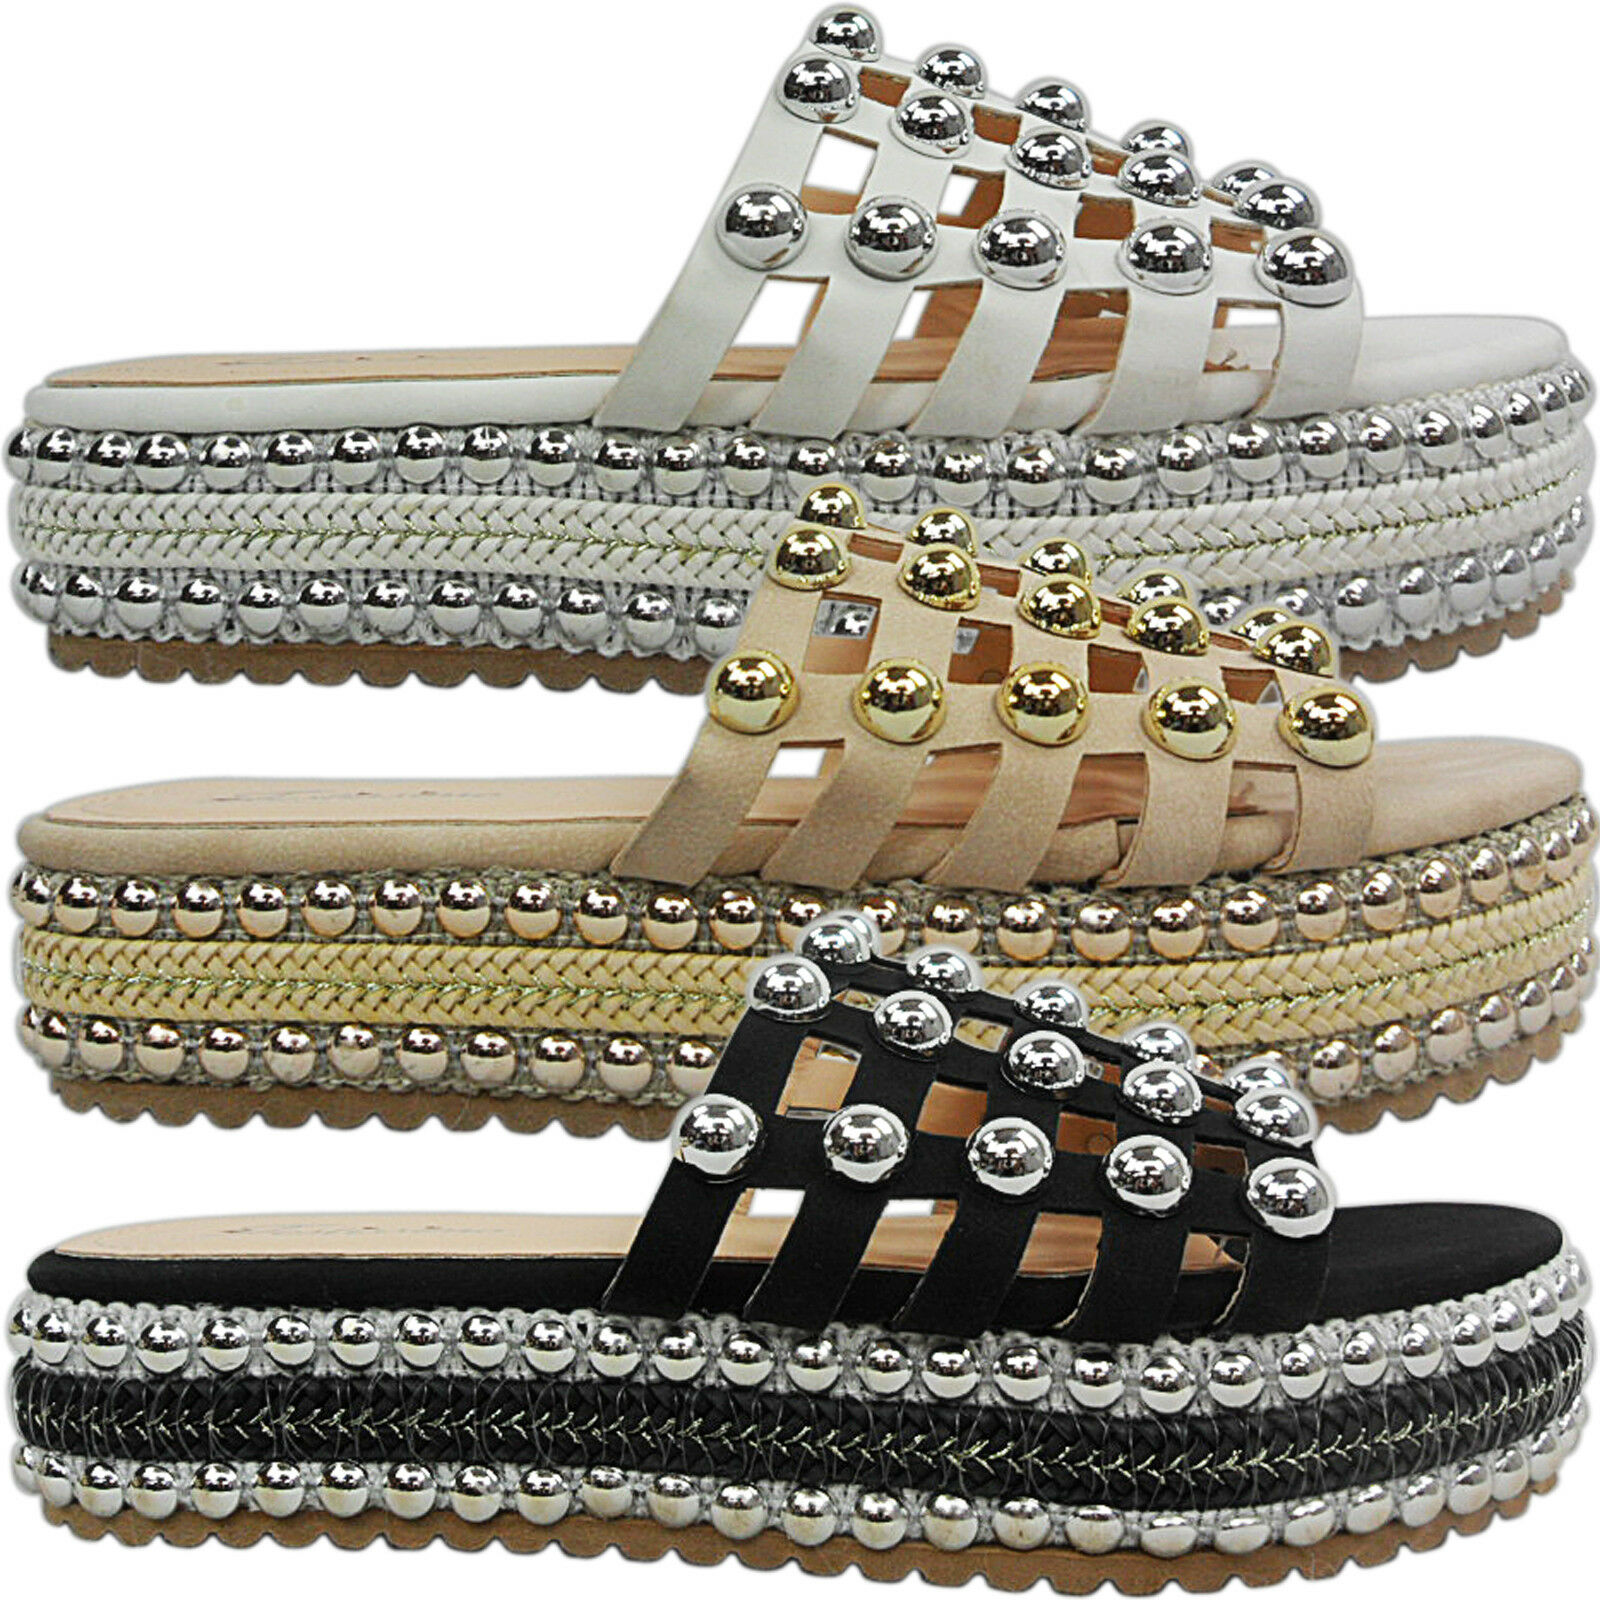 NEW WOMENS LOW HEEL FLATFORMS CAGED STUDDED ESPADRILLES SLIP ON MULES SANDALS